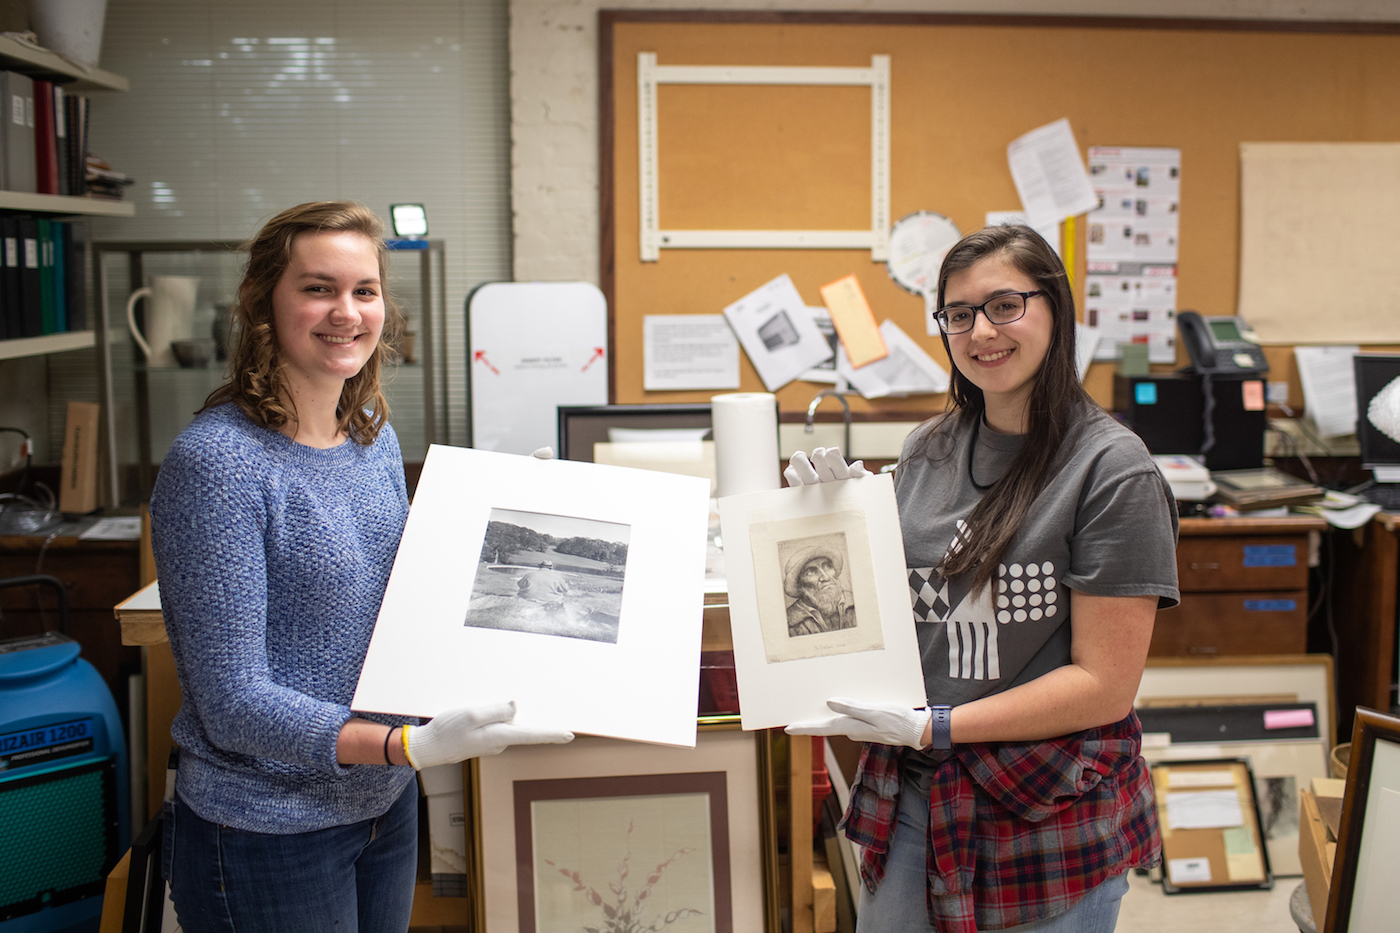 Students pose with famous art prints